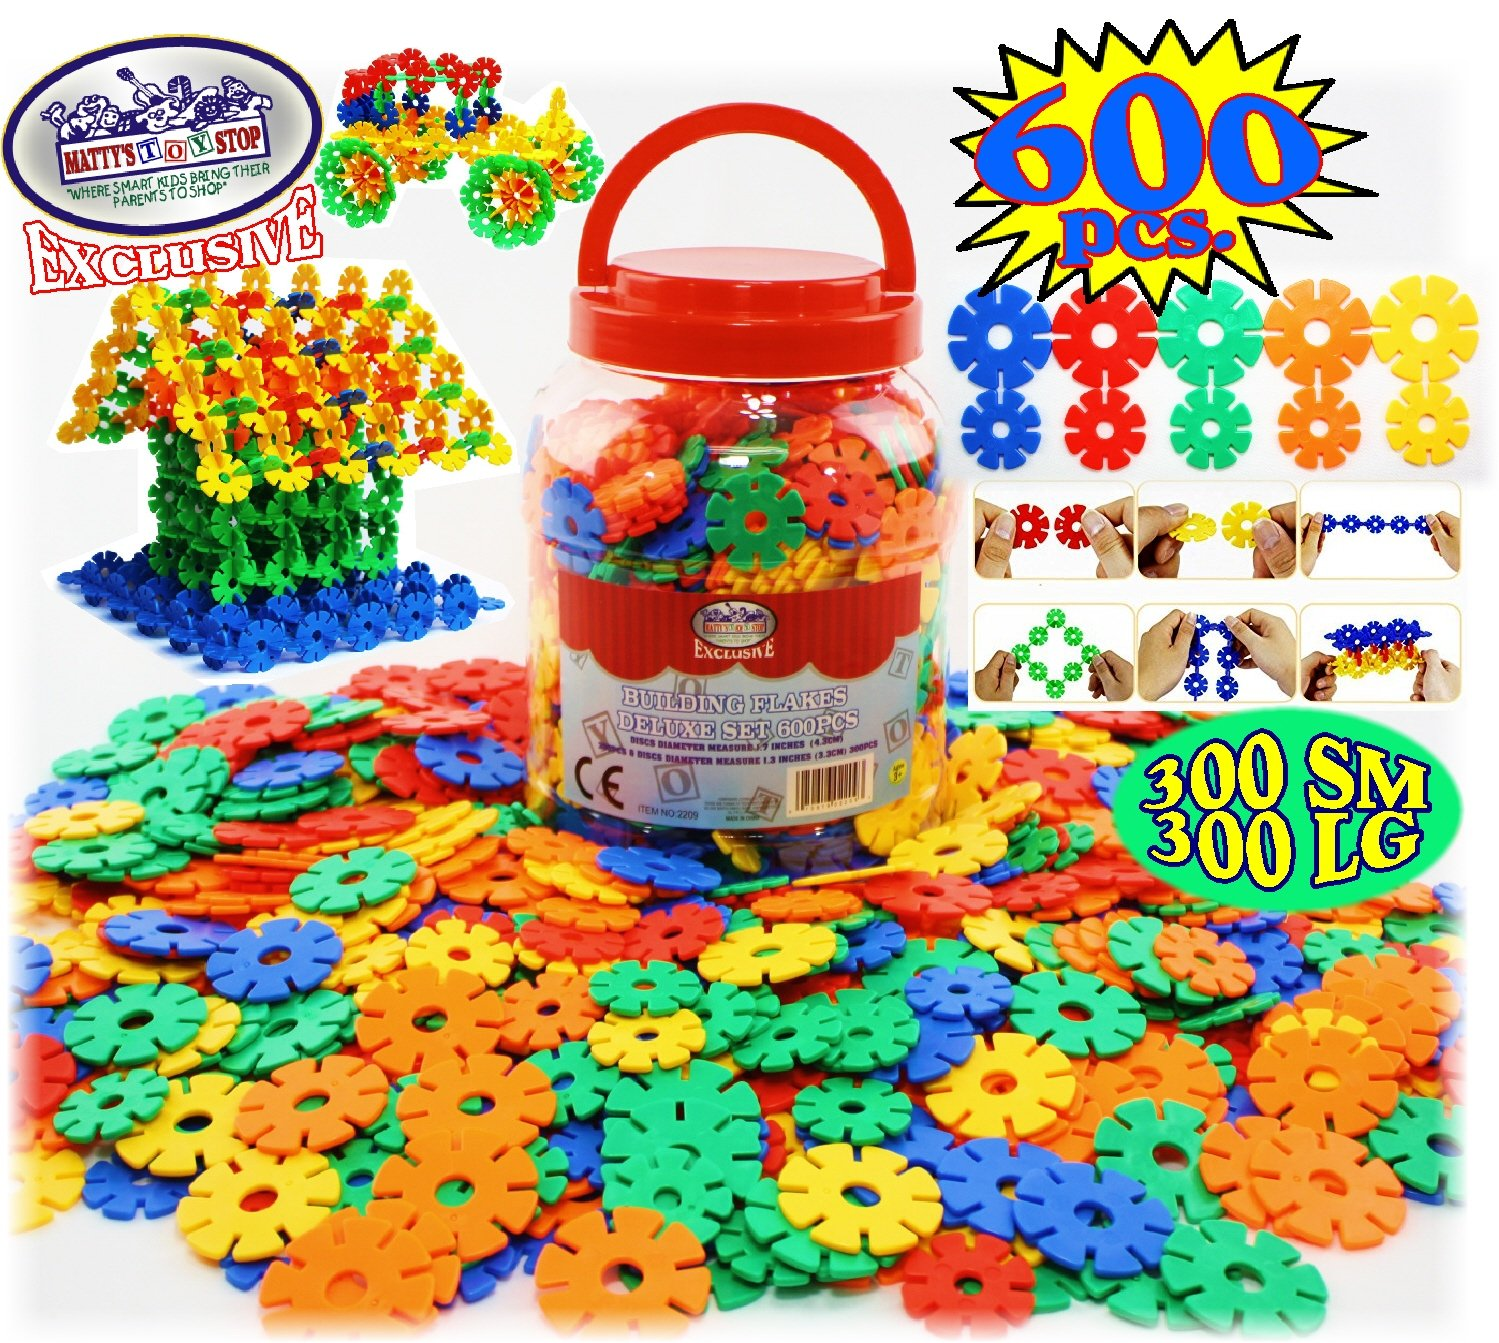 Creative /& Educational Interlocking Building Set Mattys Toy Stop Deluxe Building Flakes//Discs 600 Pieces Great STEM Toy Includes Storage Bucket Homeware Featuring 300 Small /& 300 Large